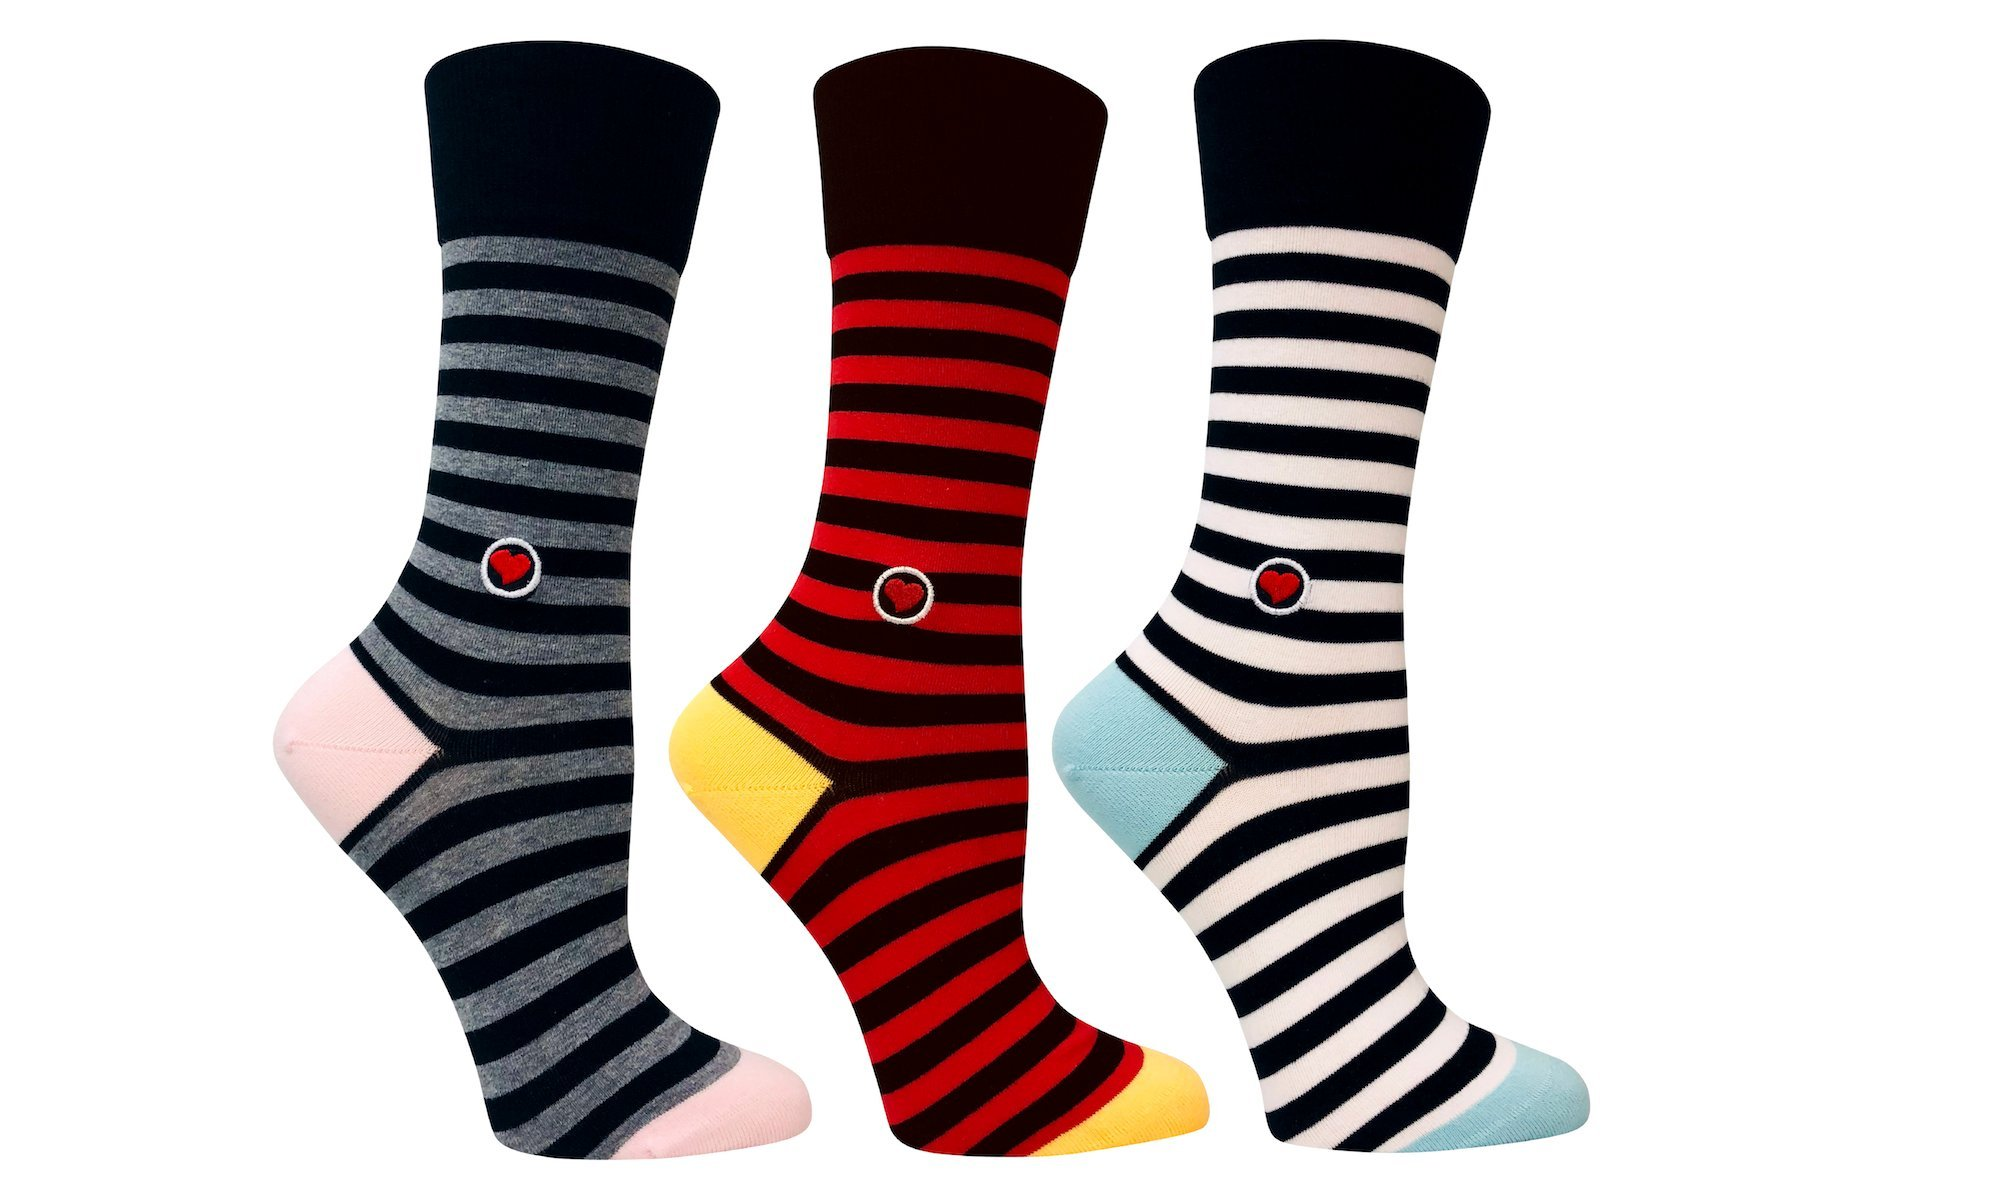 Women's Organic cotton stripes trouser socks - 3 Pack black, red and gray striped seamless toes